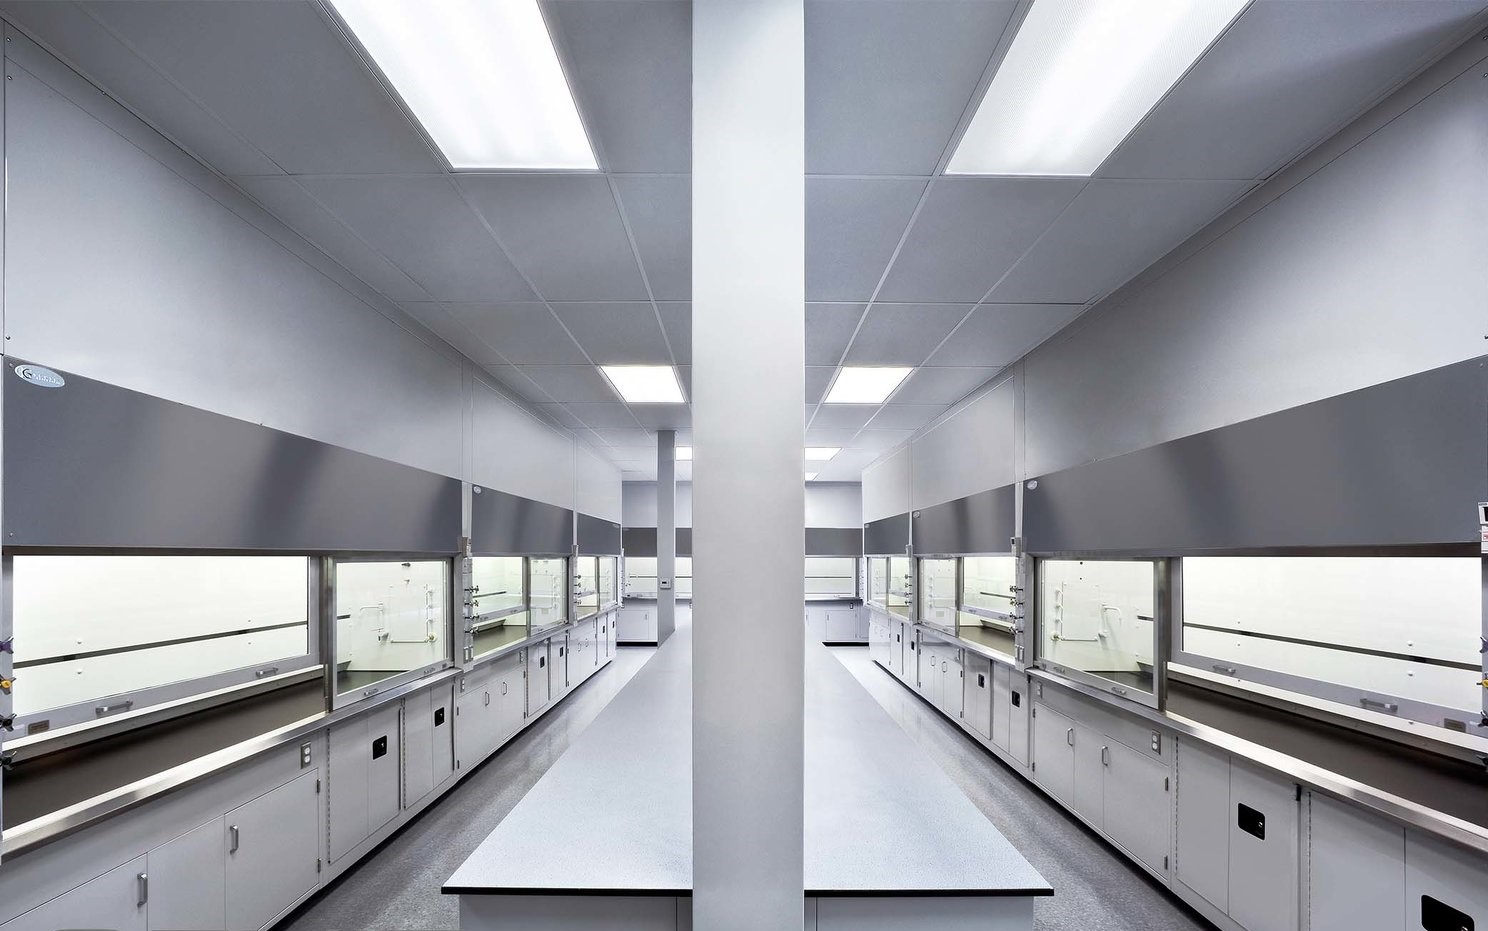 Ventilated Chemical Storage Systems | Systems and Space - Systems